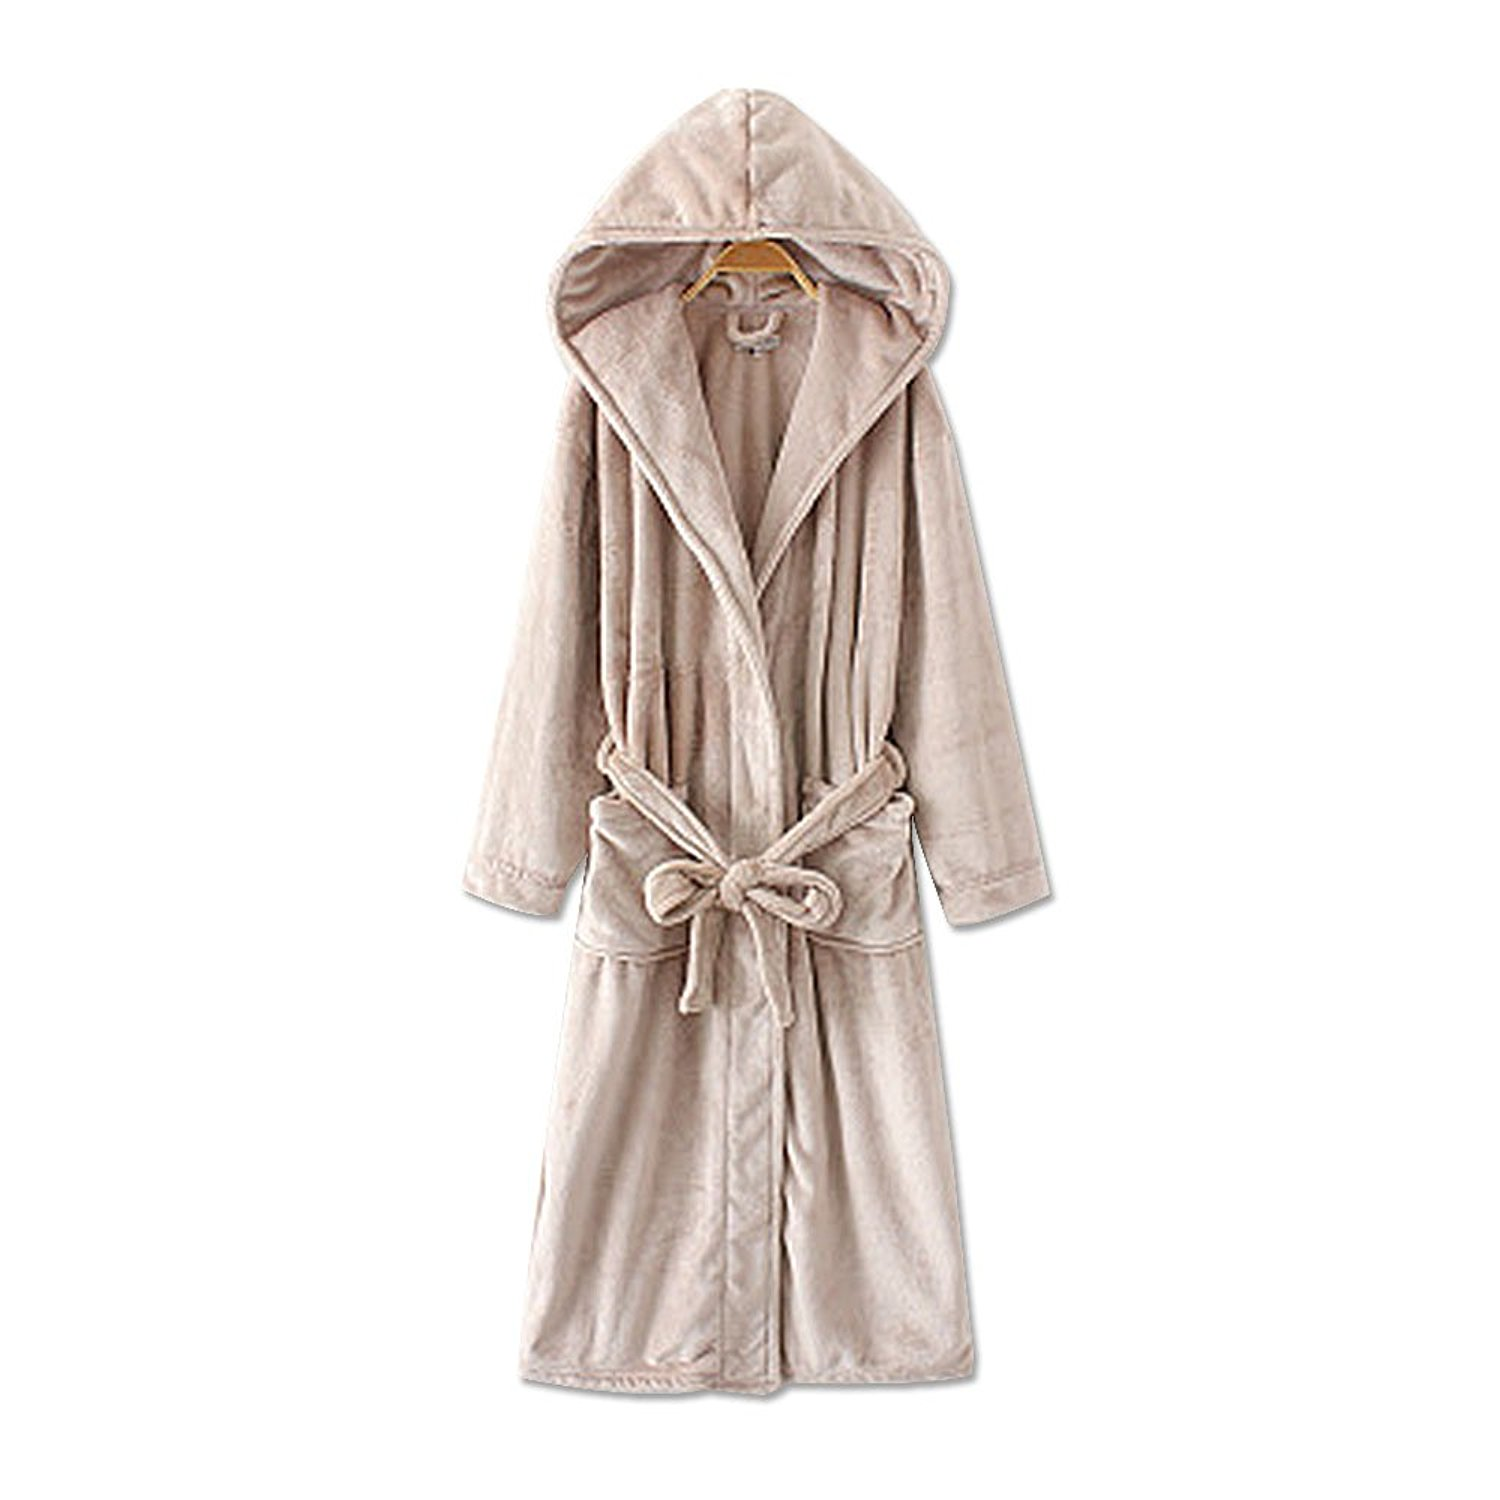 5ae2d1cb5c Get Quotations · Robes For Women with Hood Plush Soft Warm Fleece Bathrobe  from WSSM